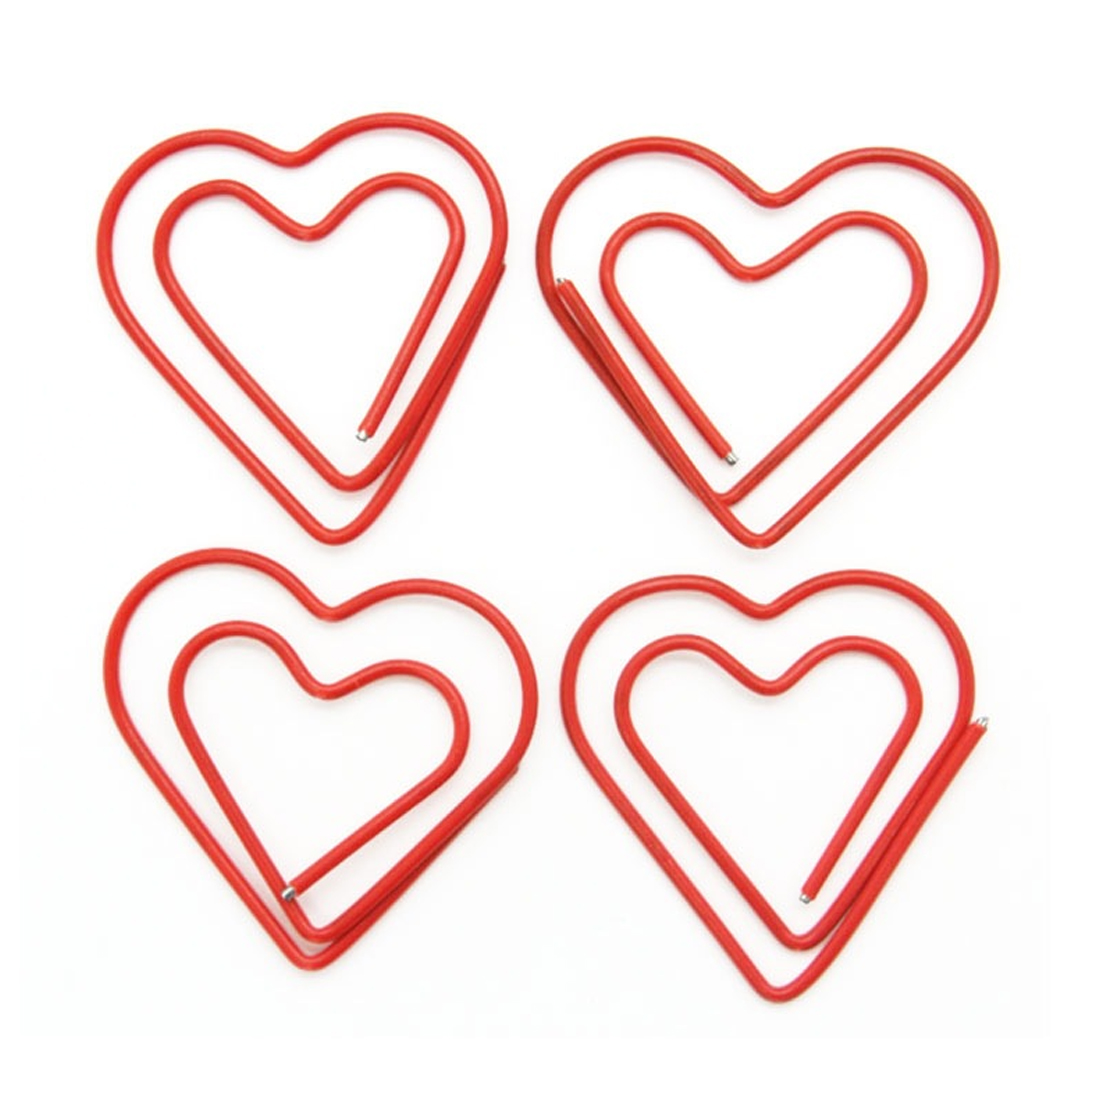 FangNymph 10Pcs/pack Beautiful Love Heart Graffette Metal Material Marcadores For Book Stationery School Office Supplies